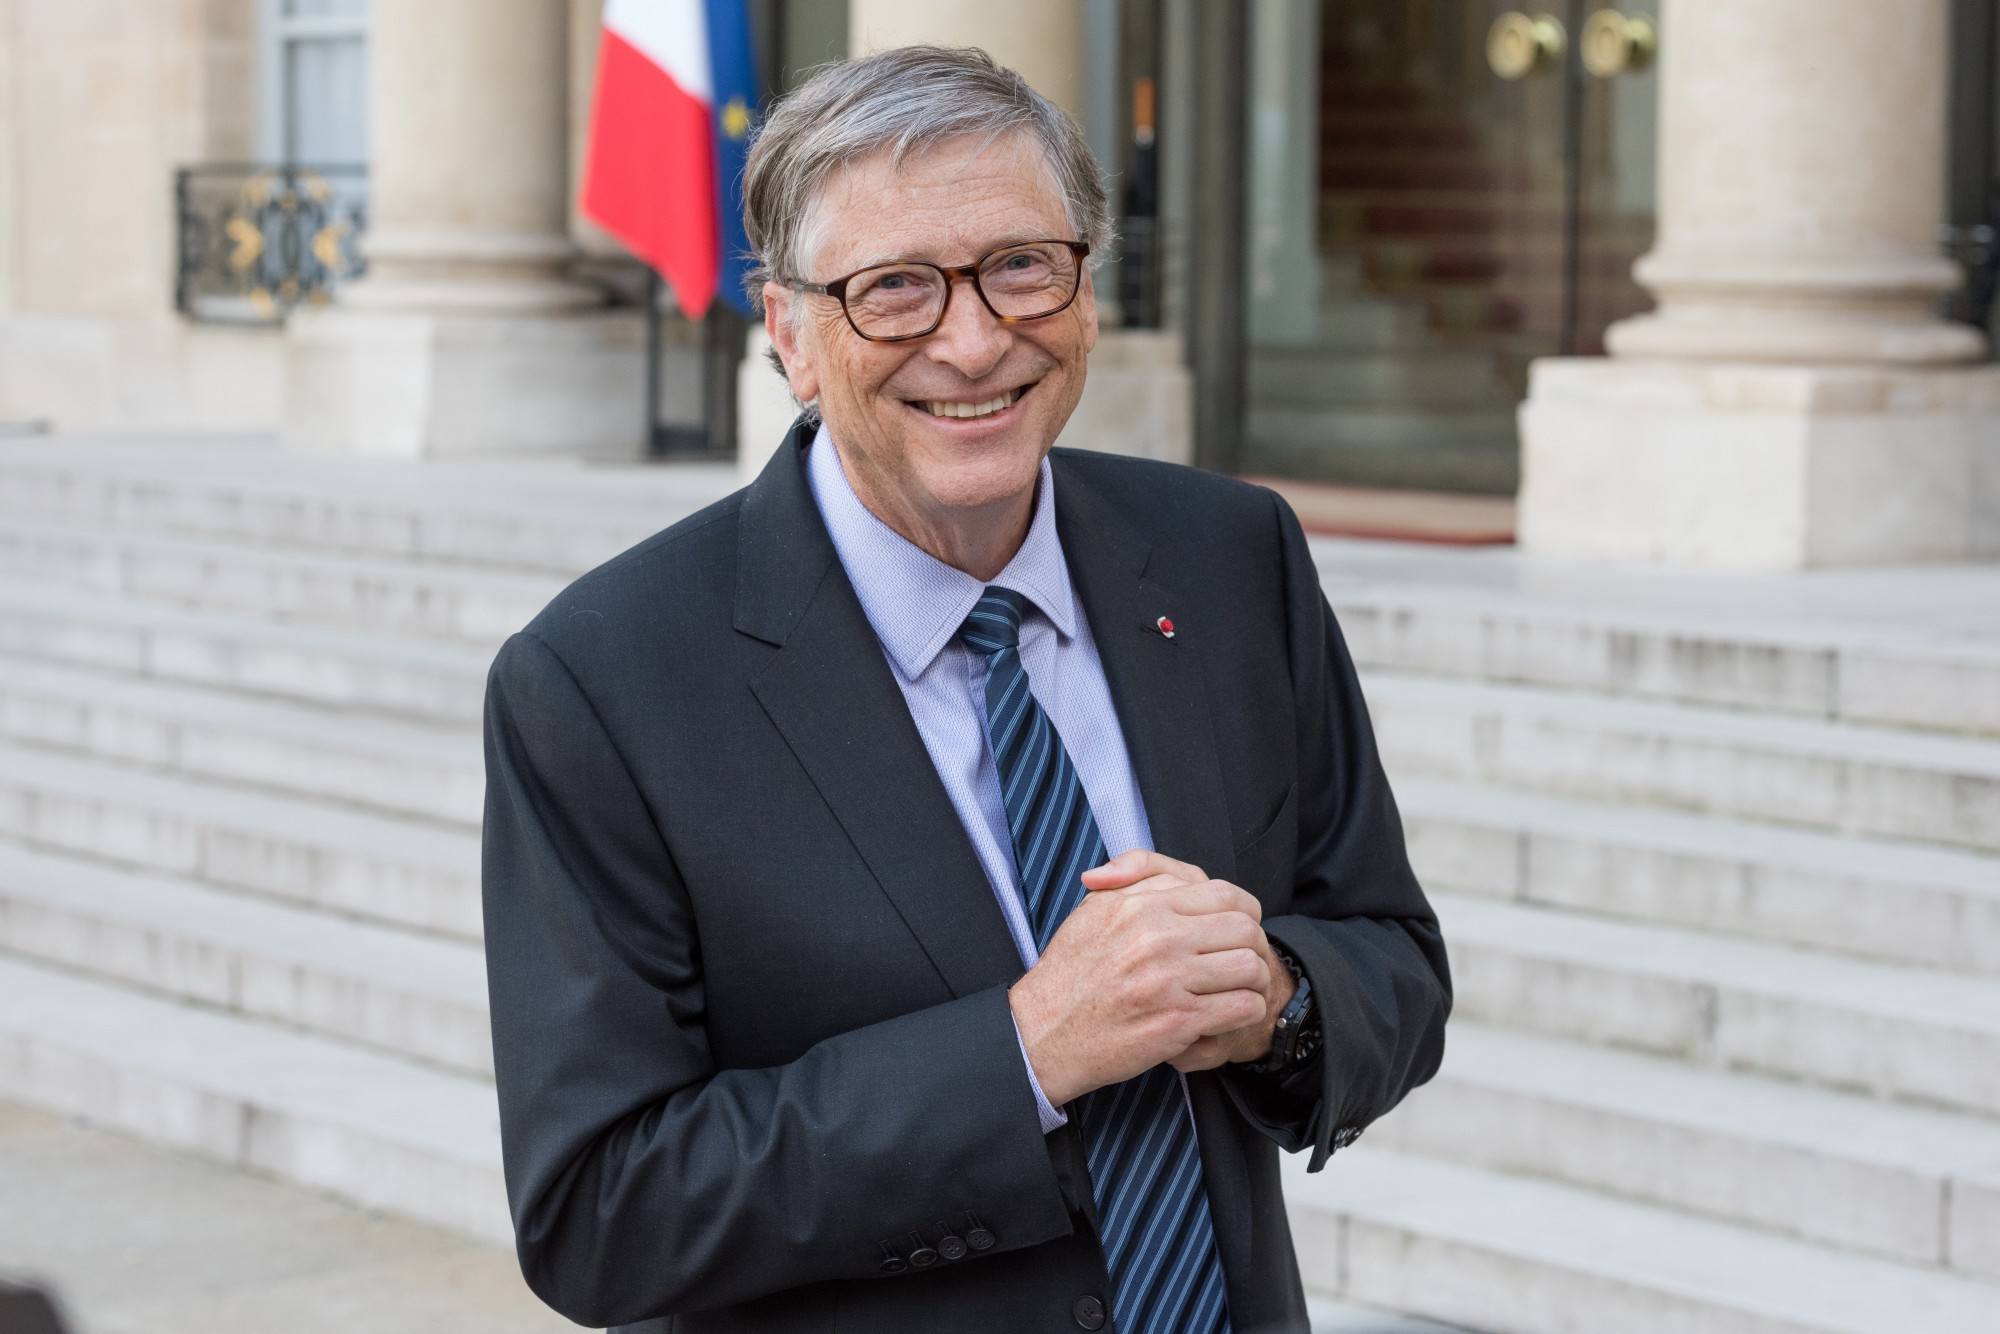 A photo of Bill Gates smiling.